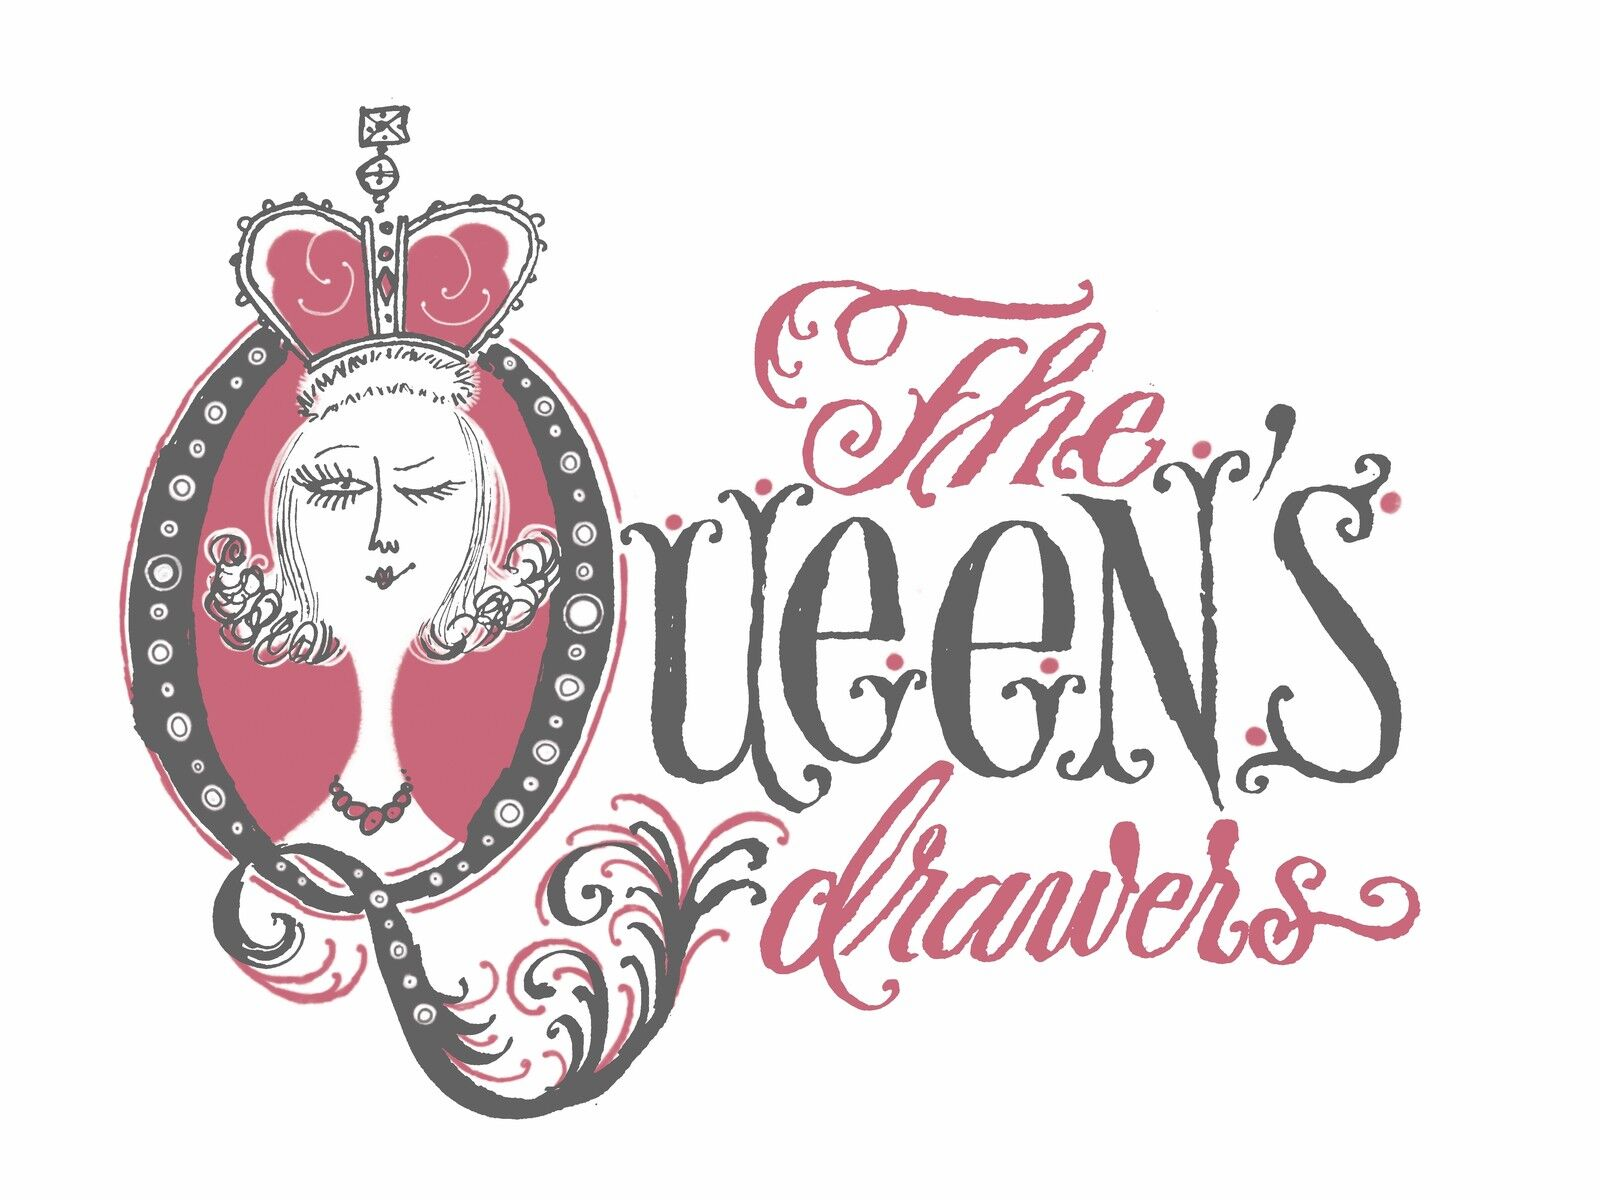 thequeensdrawers